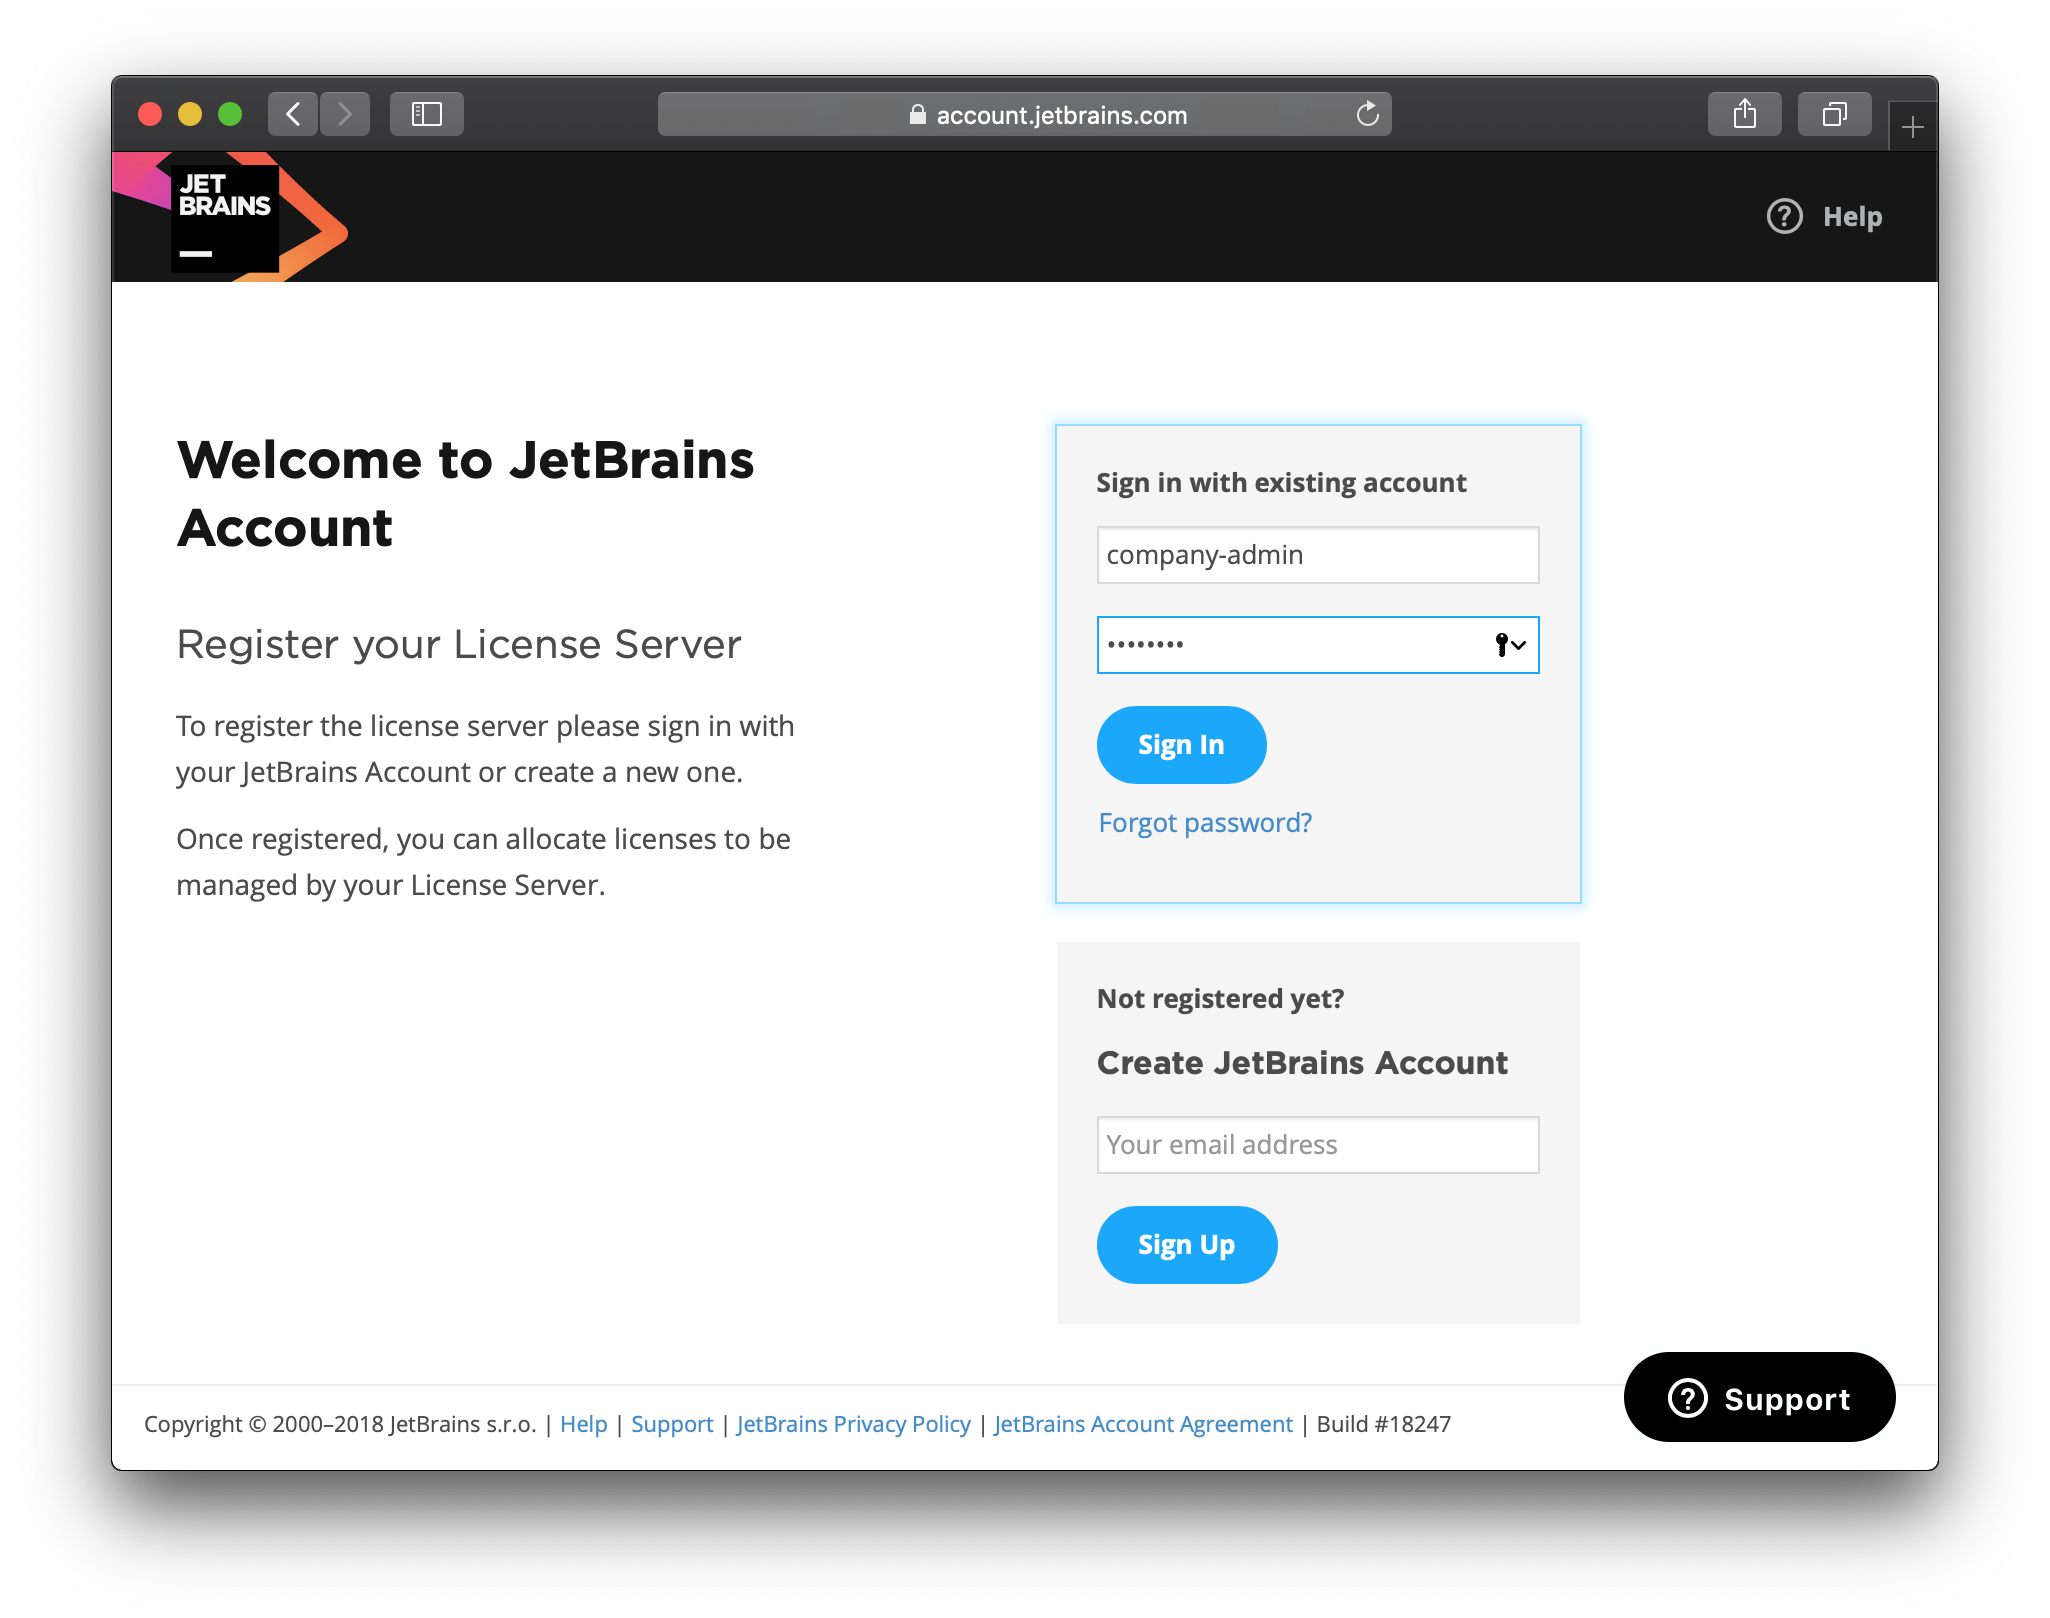 Log in with your JetBrains Account